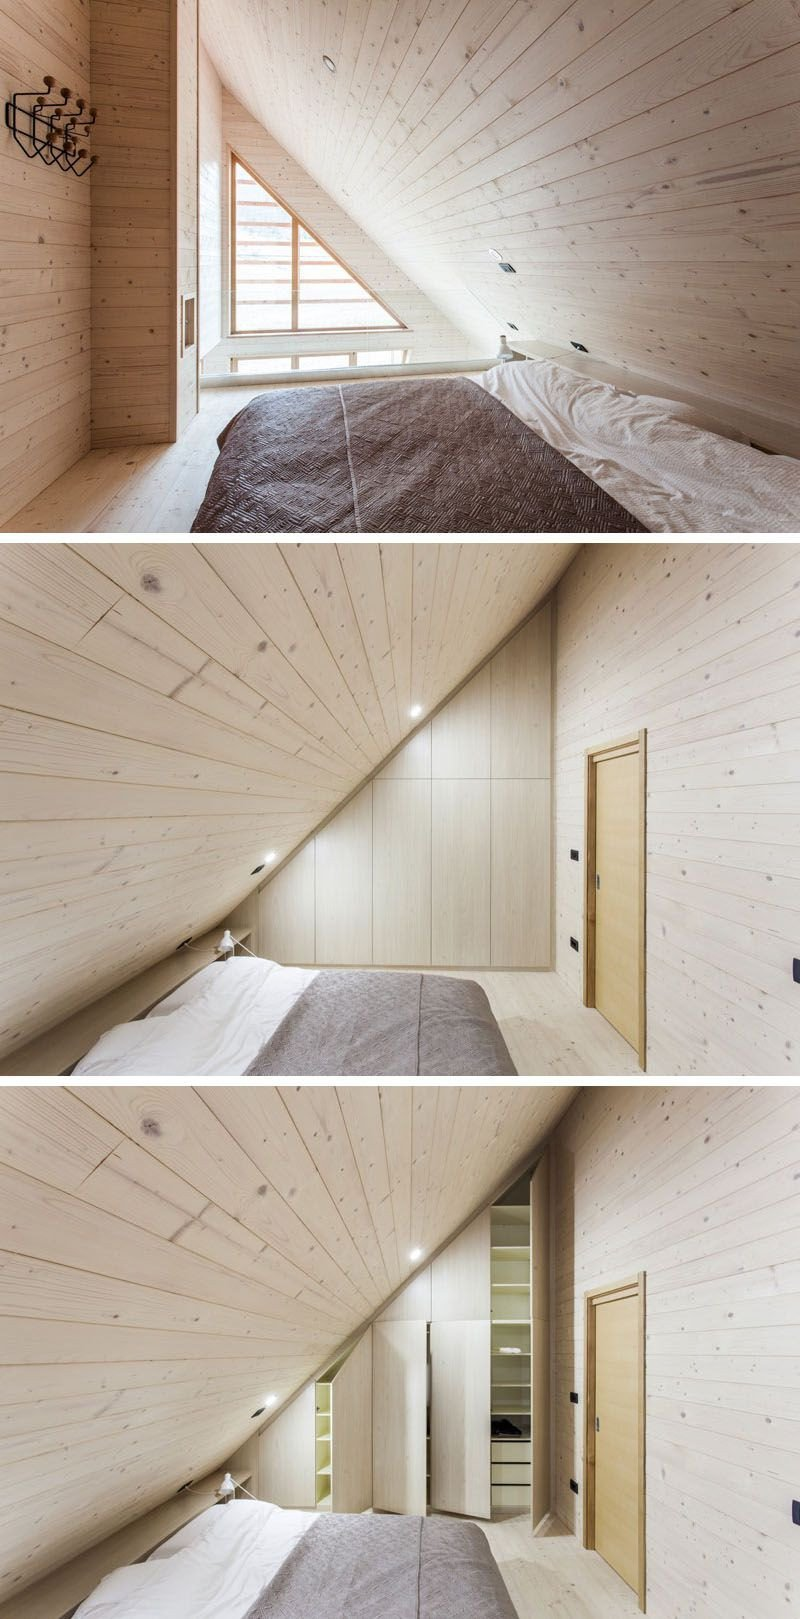 Sloped Ceiling Bedroom Ideas Awesome the Dark Exterior This Wood House Encloses A Light